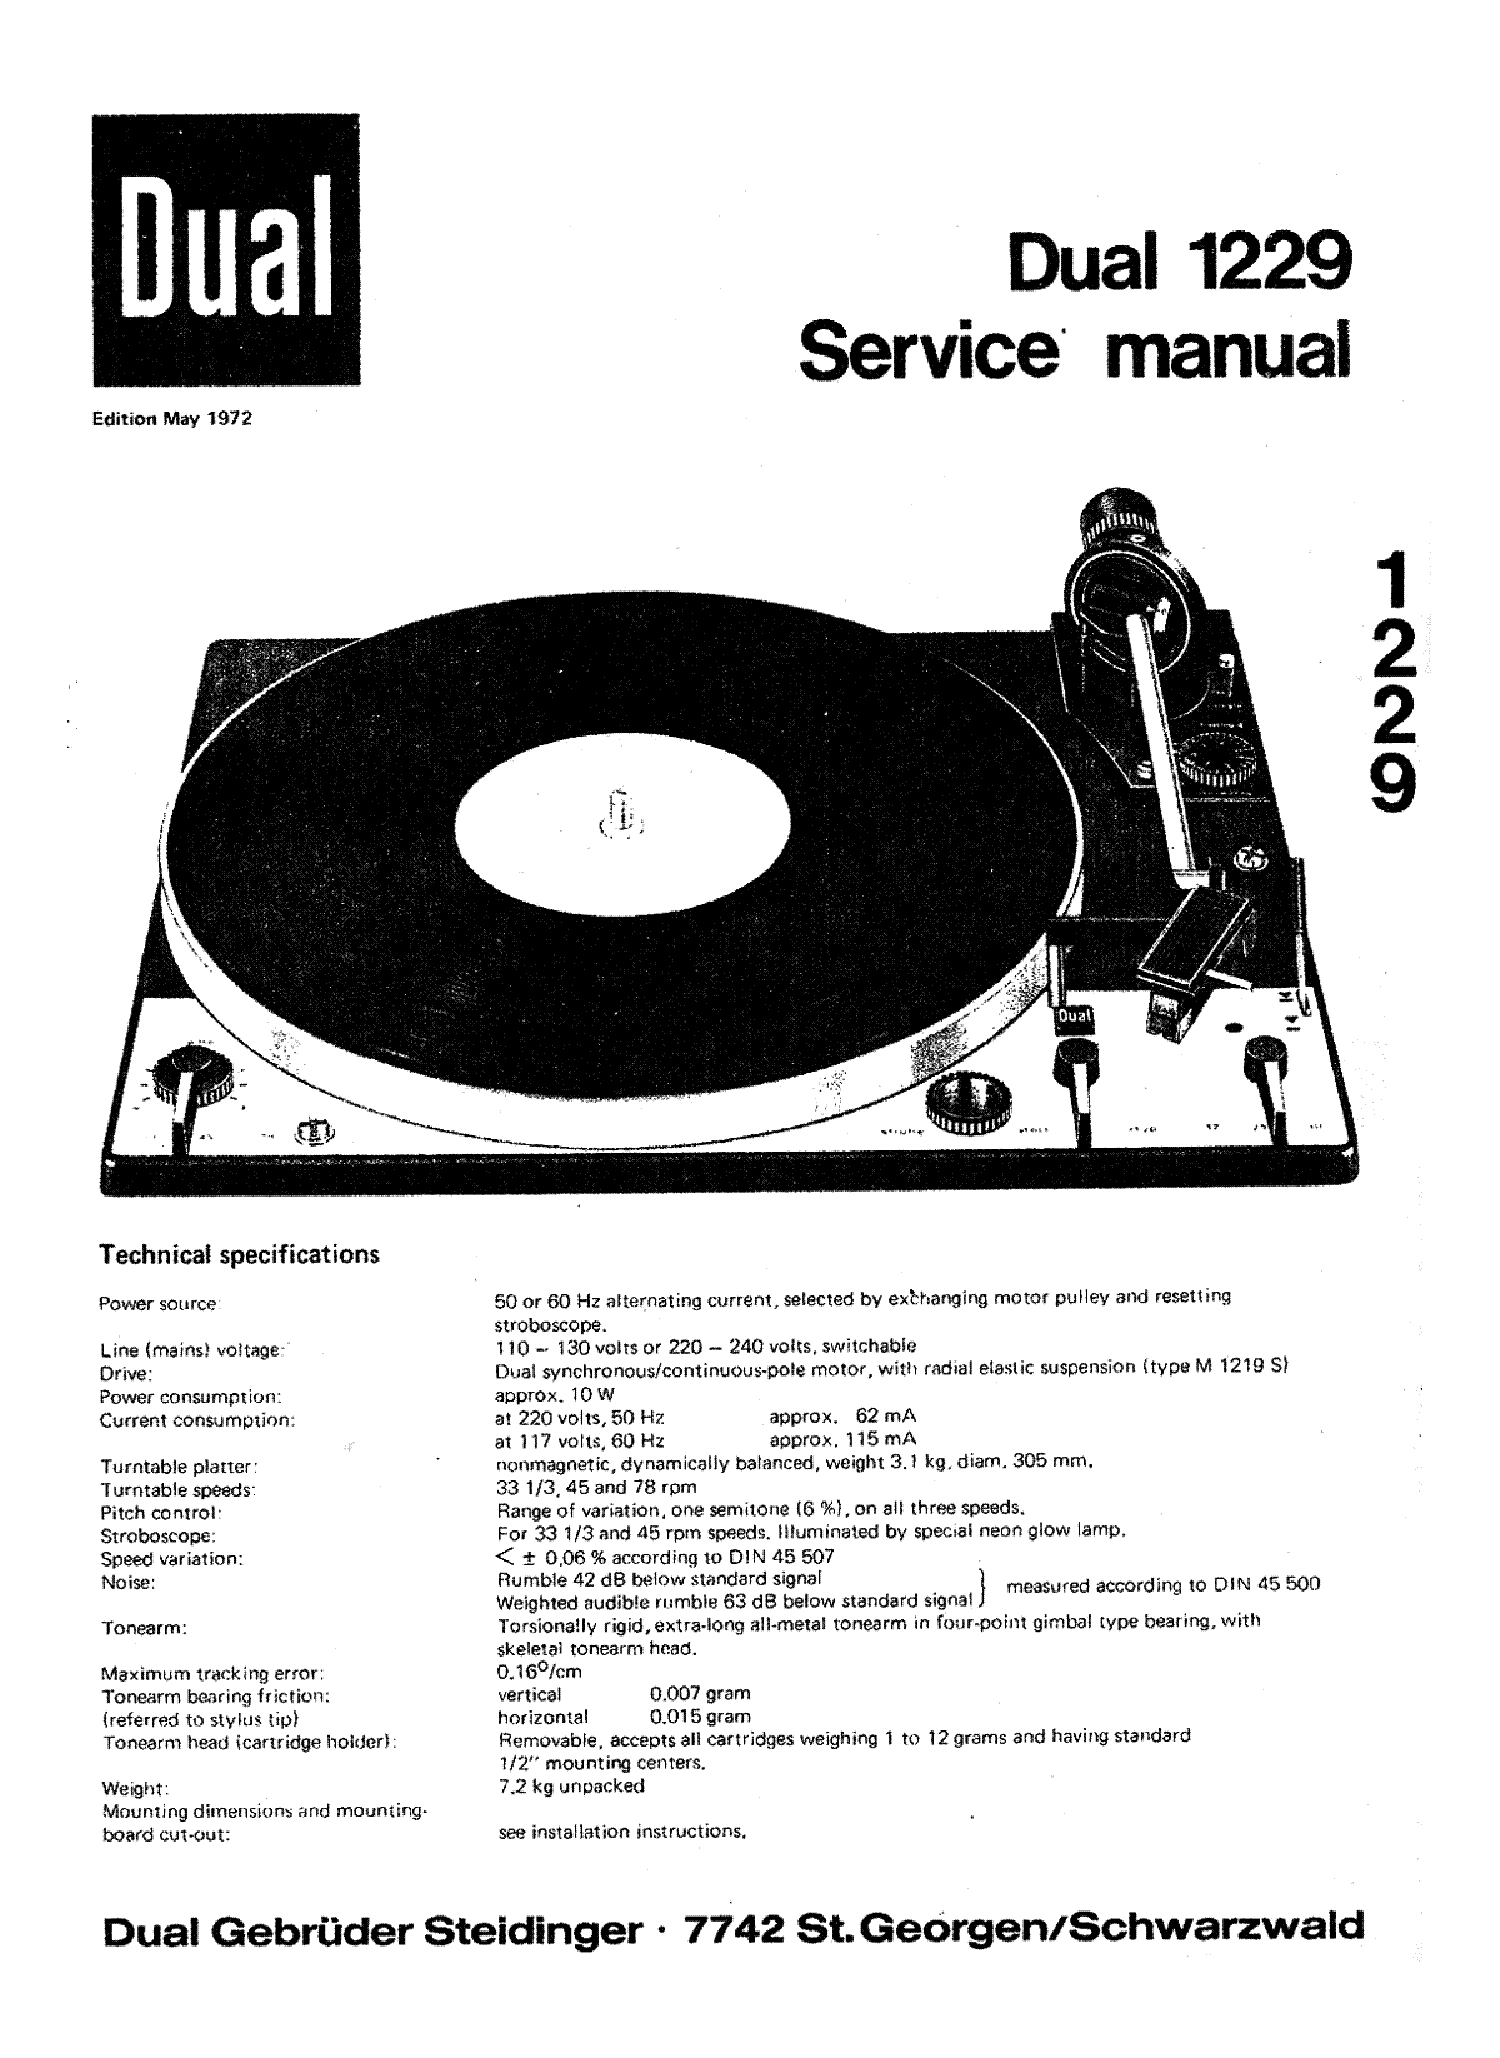 DUAL 1229 TURNTABLE service manual (1st page)